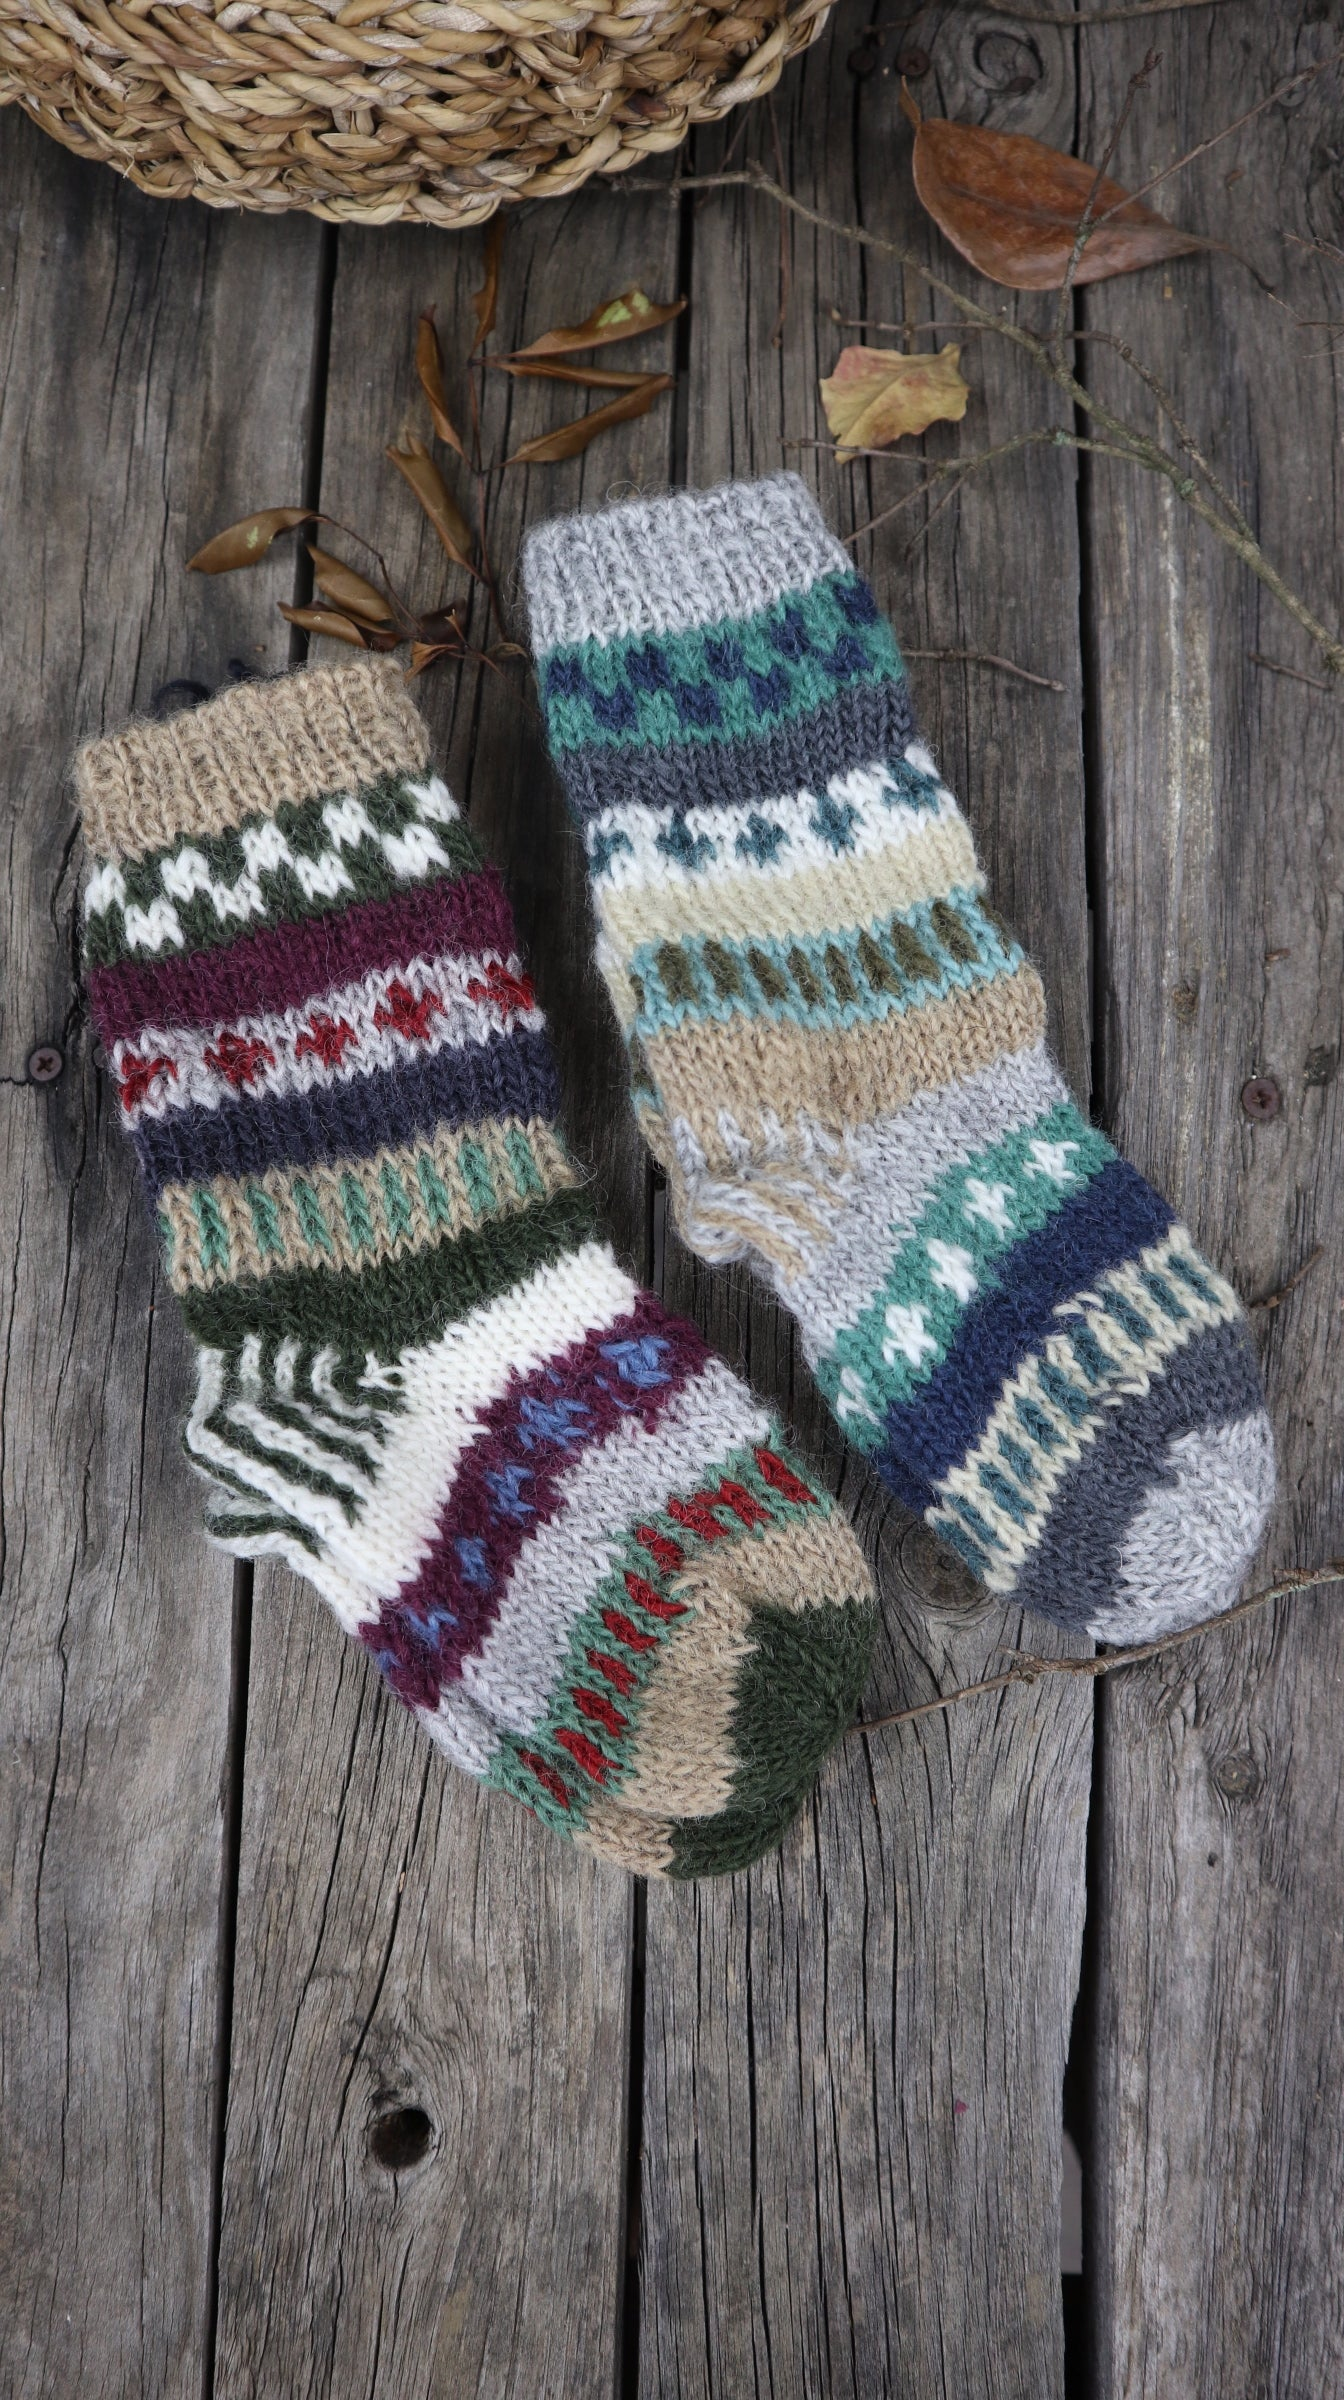 Fair Trade Ethical Children's Woollen Patterned Socks in Green, Grey and White